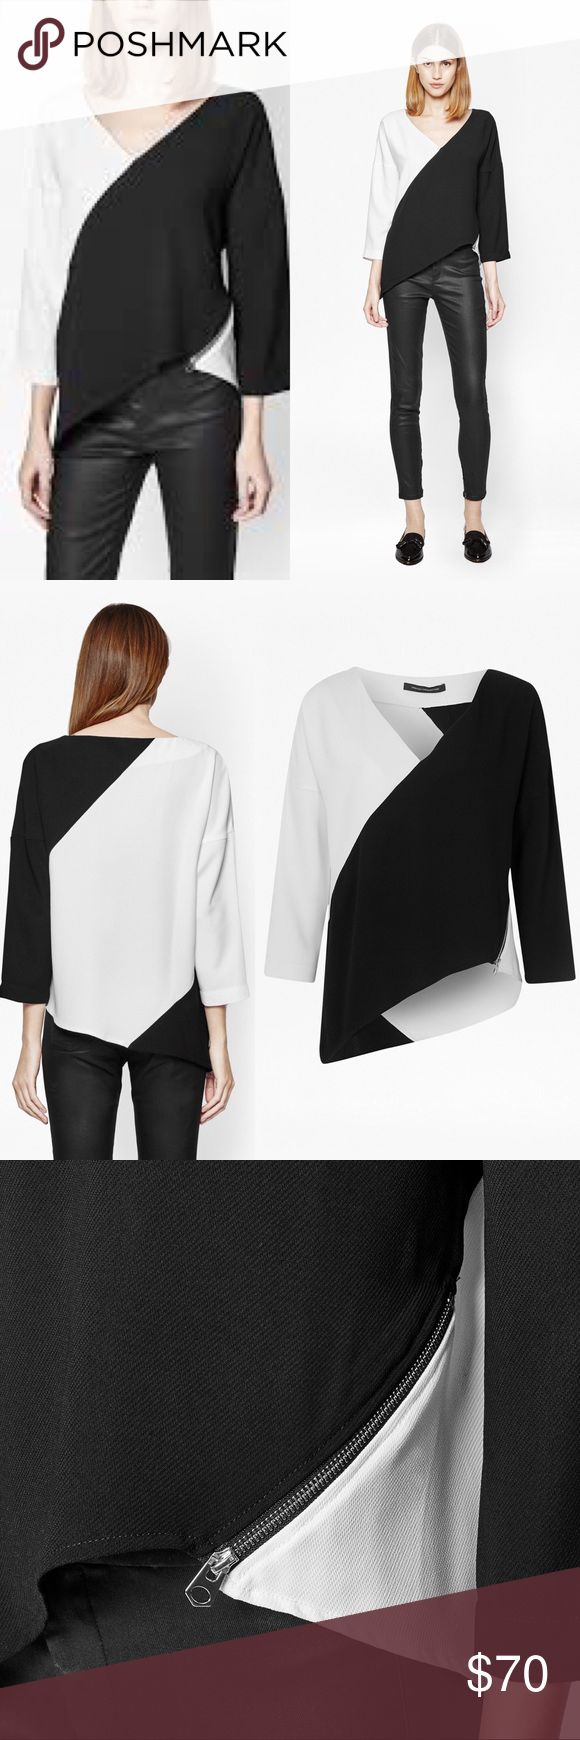 """French Connection Arrow Asymmetric Top Team this ultra-modern asymmetric top with gently flared bootcut trousers for a fresh new silhouette. Monochrome top with colour-blocked panels Front side functioning diagonal zip Asymmetric hemline V-neckline 3/4 length sleeves 21"""" underarm to underarm and 21.5"""" L with additional 5"""" at side French Connection Tops Blouses"""